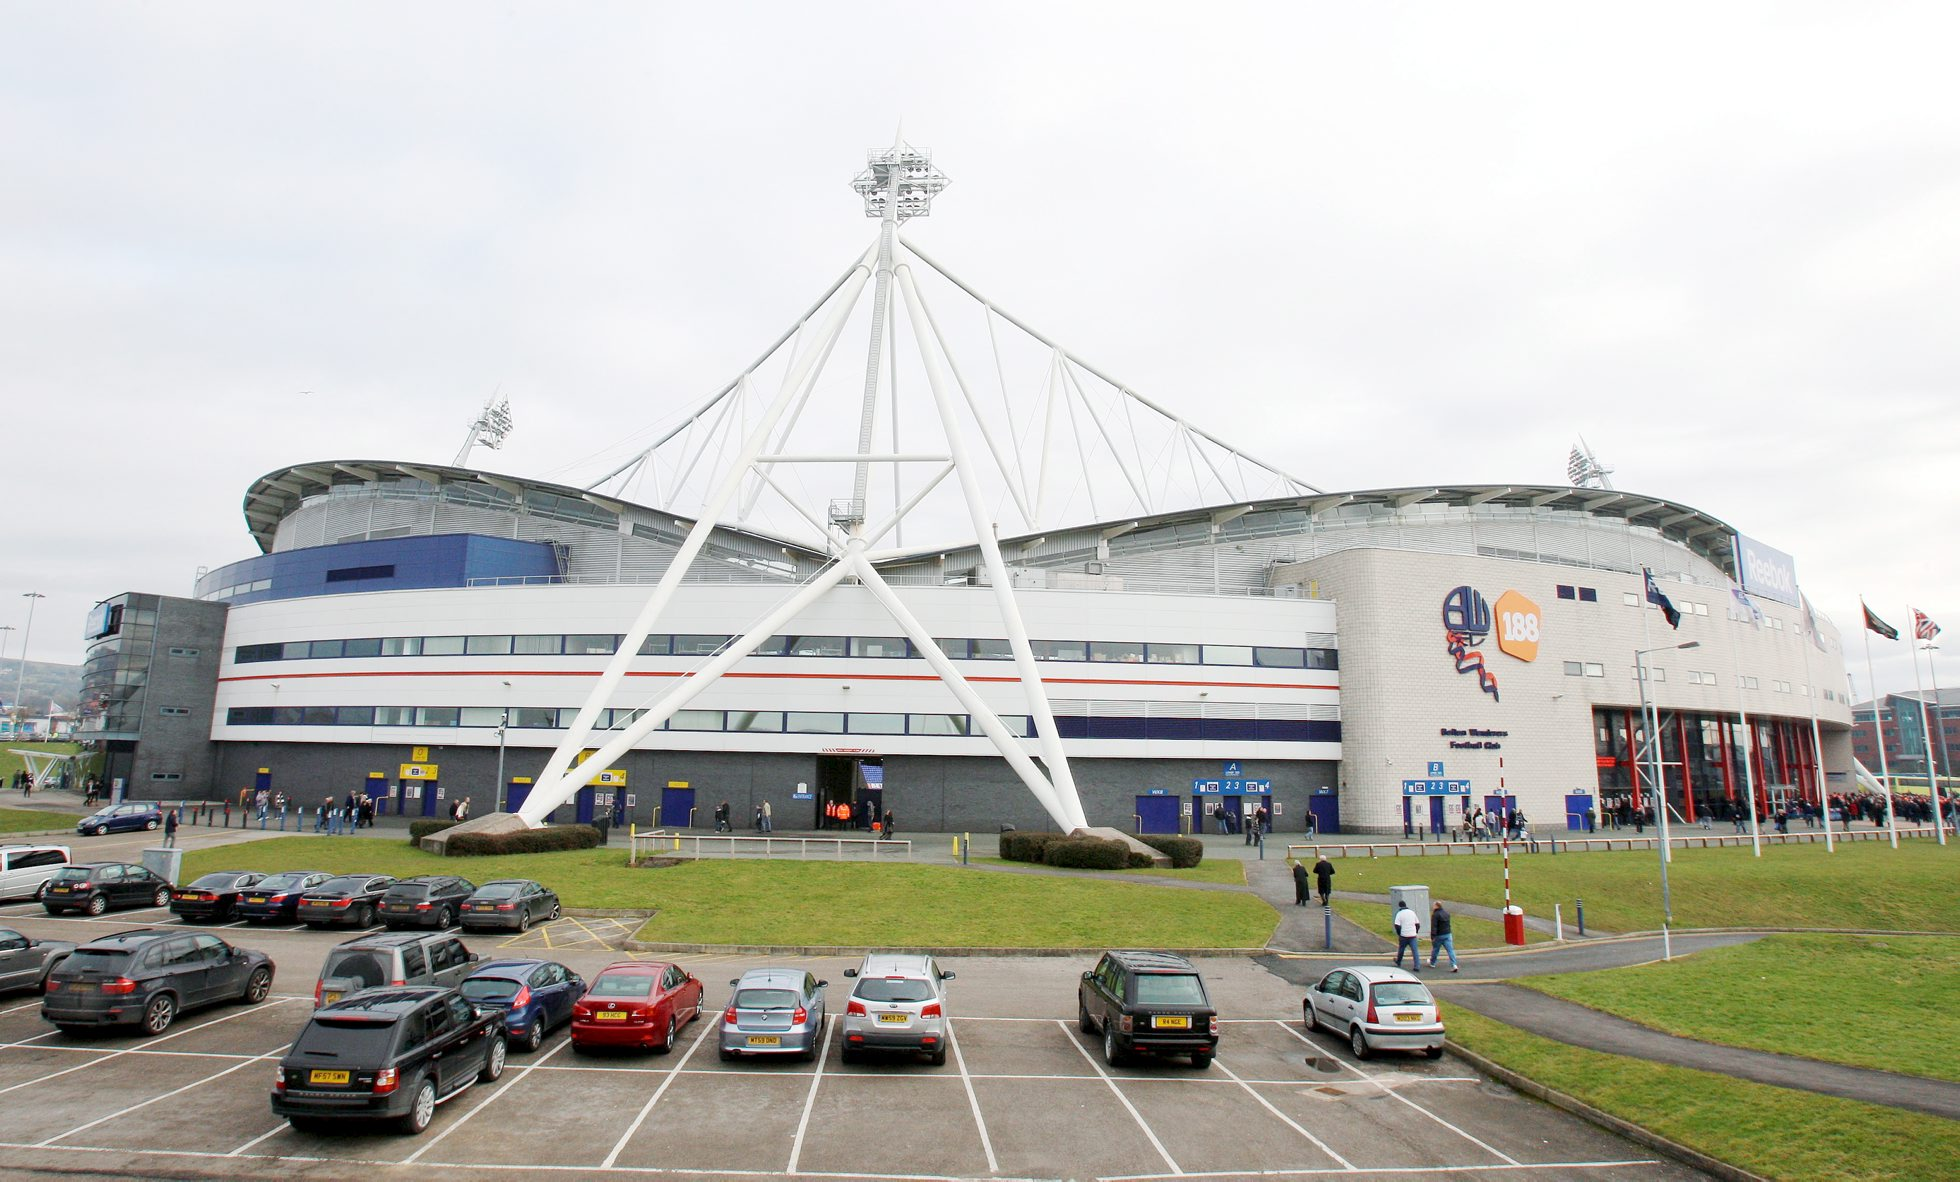 UPDATED: Reebok Stadium to be renamed Macron Stadium